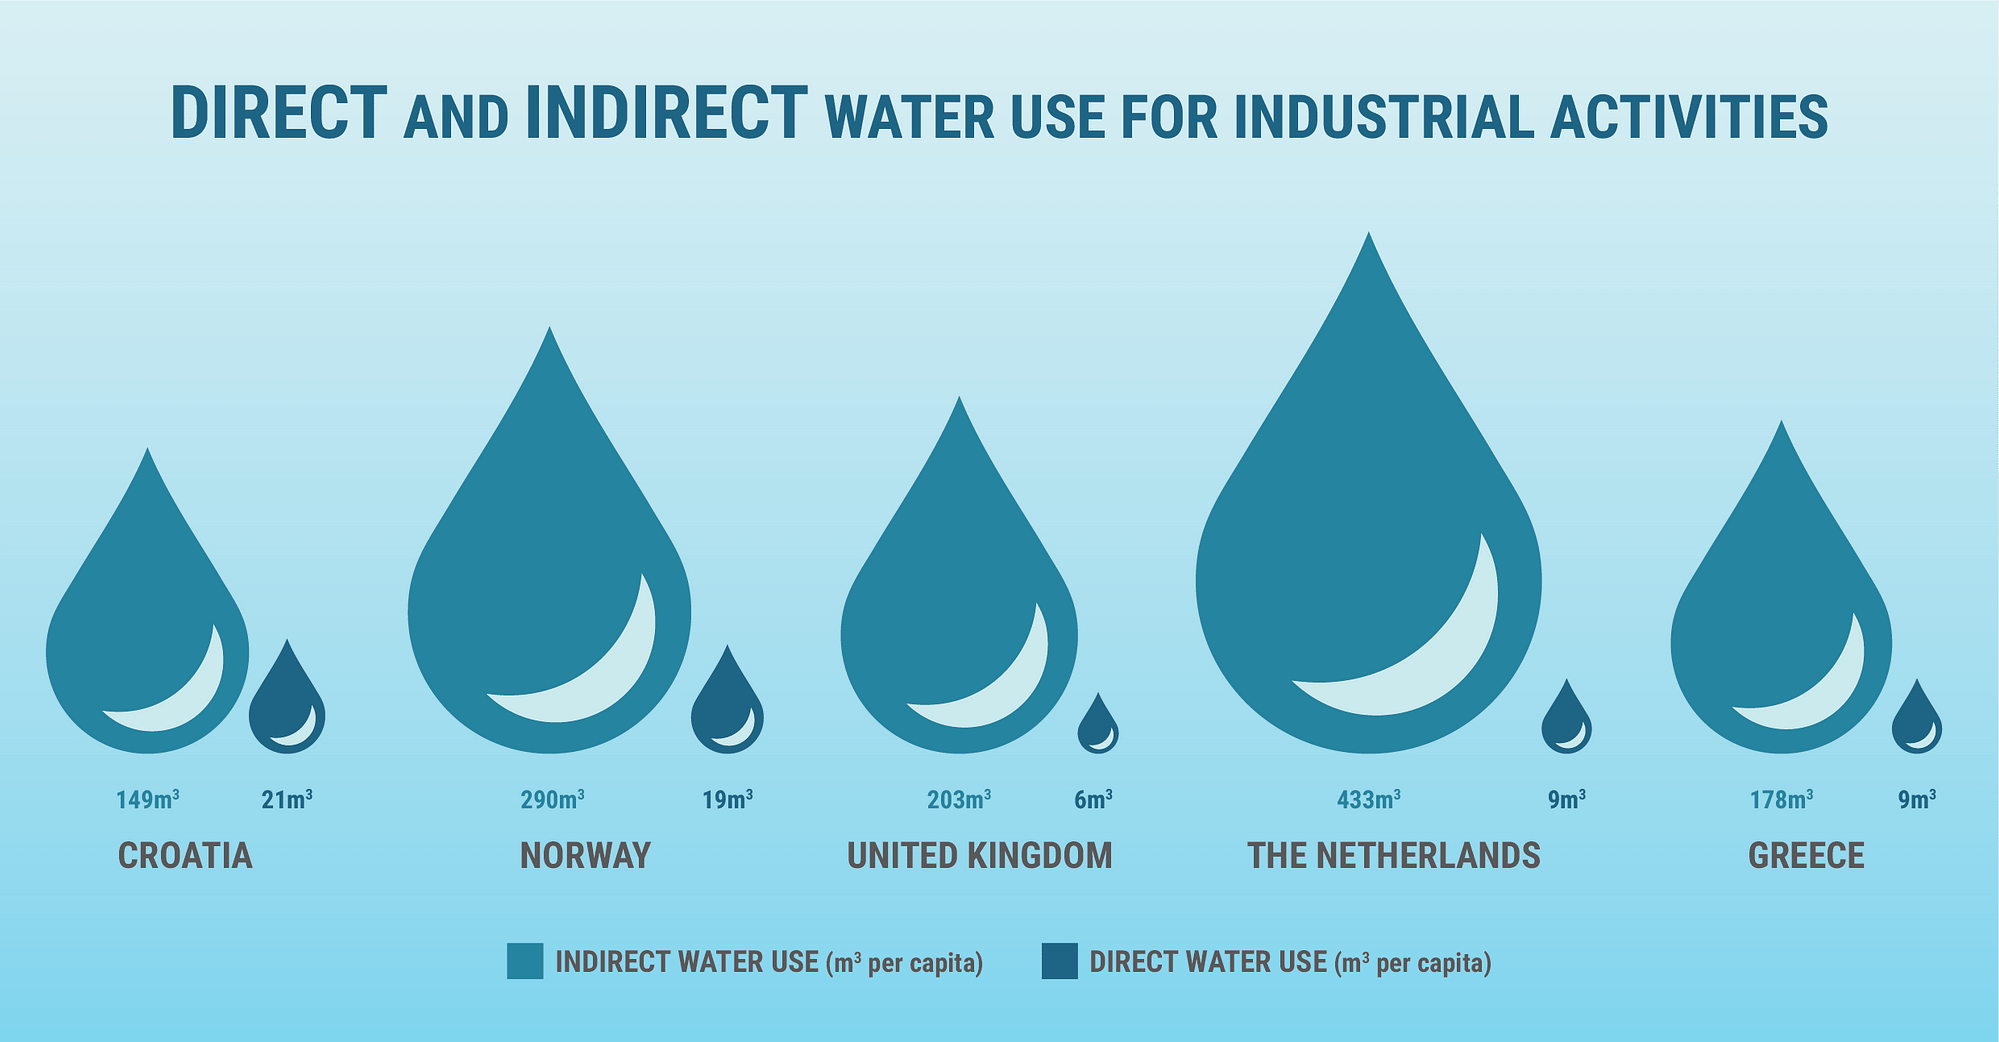 direct vs indirect impacts of water use in industrial activities, per country